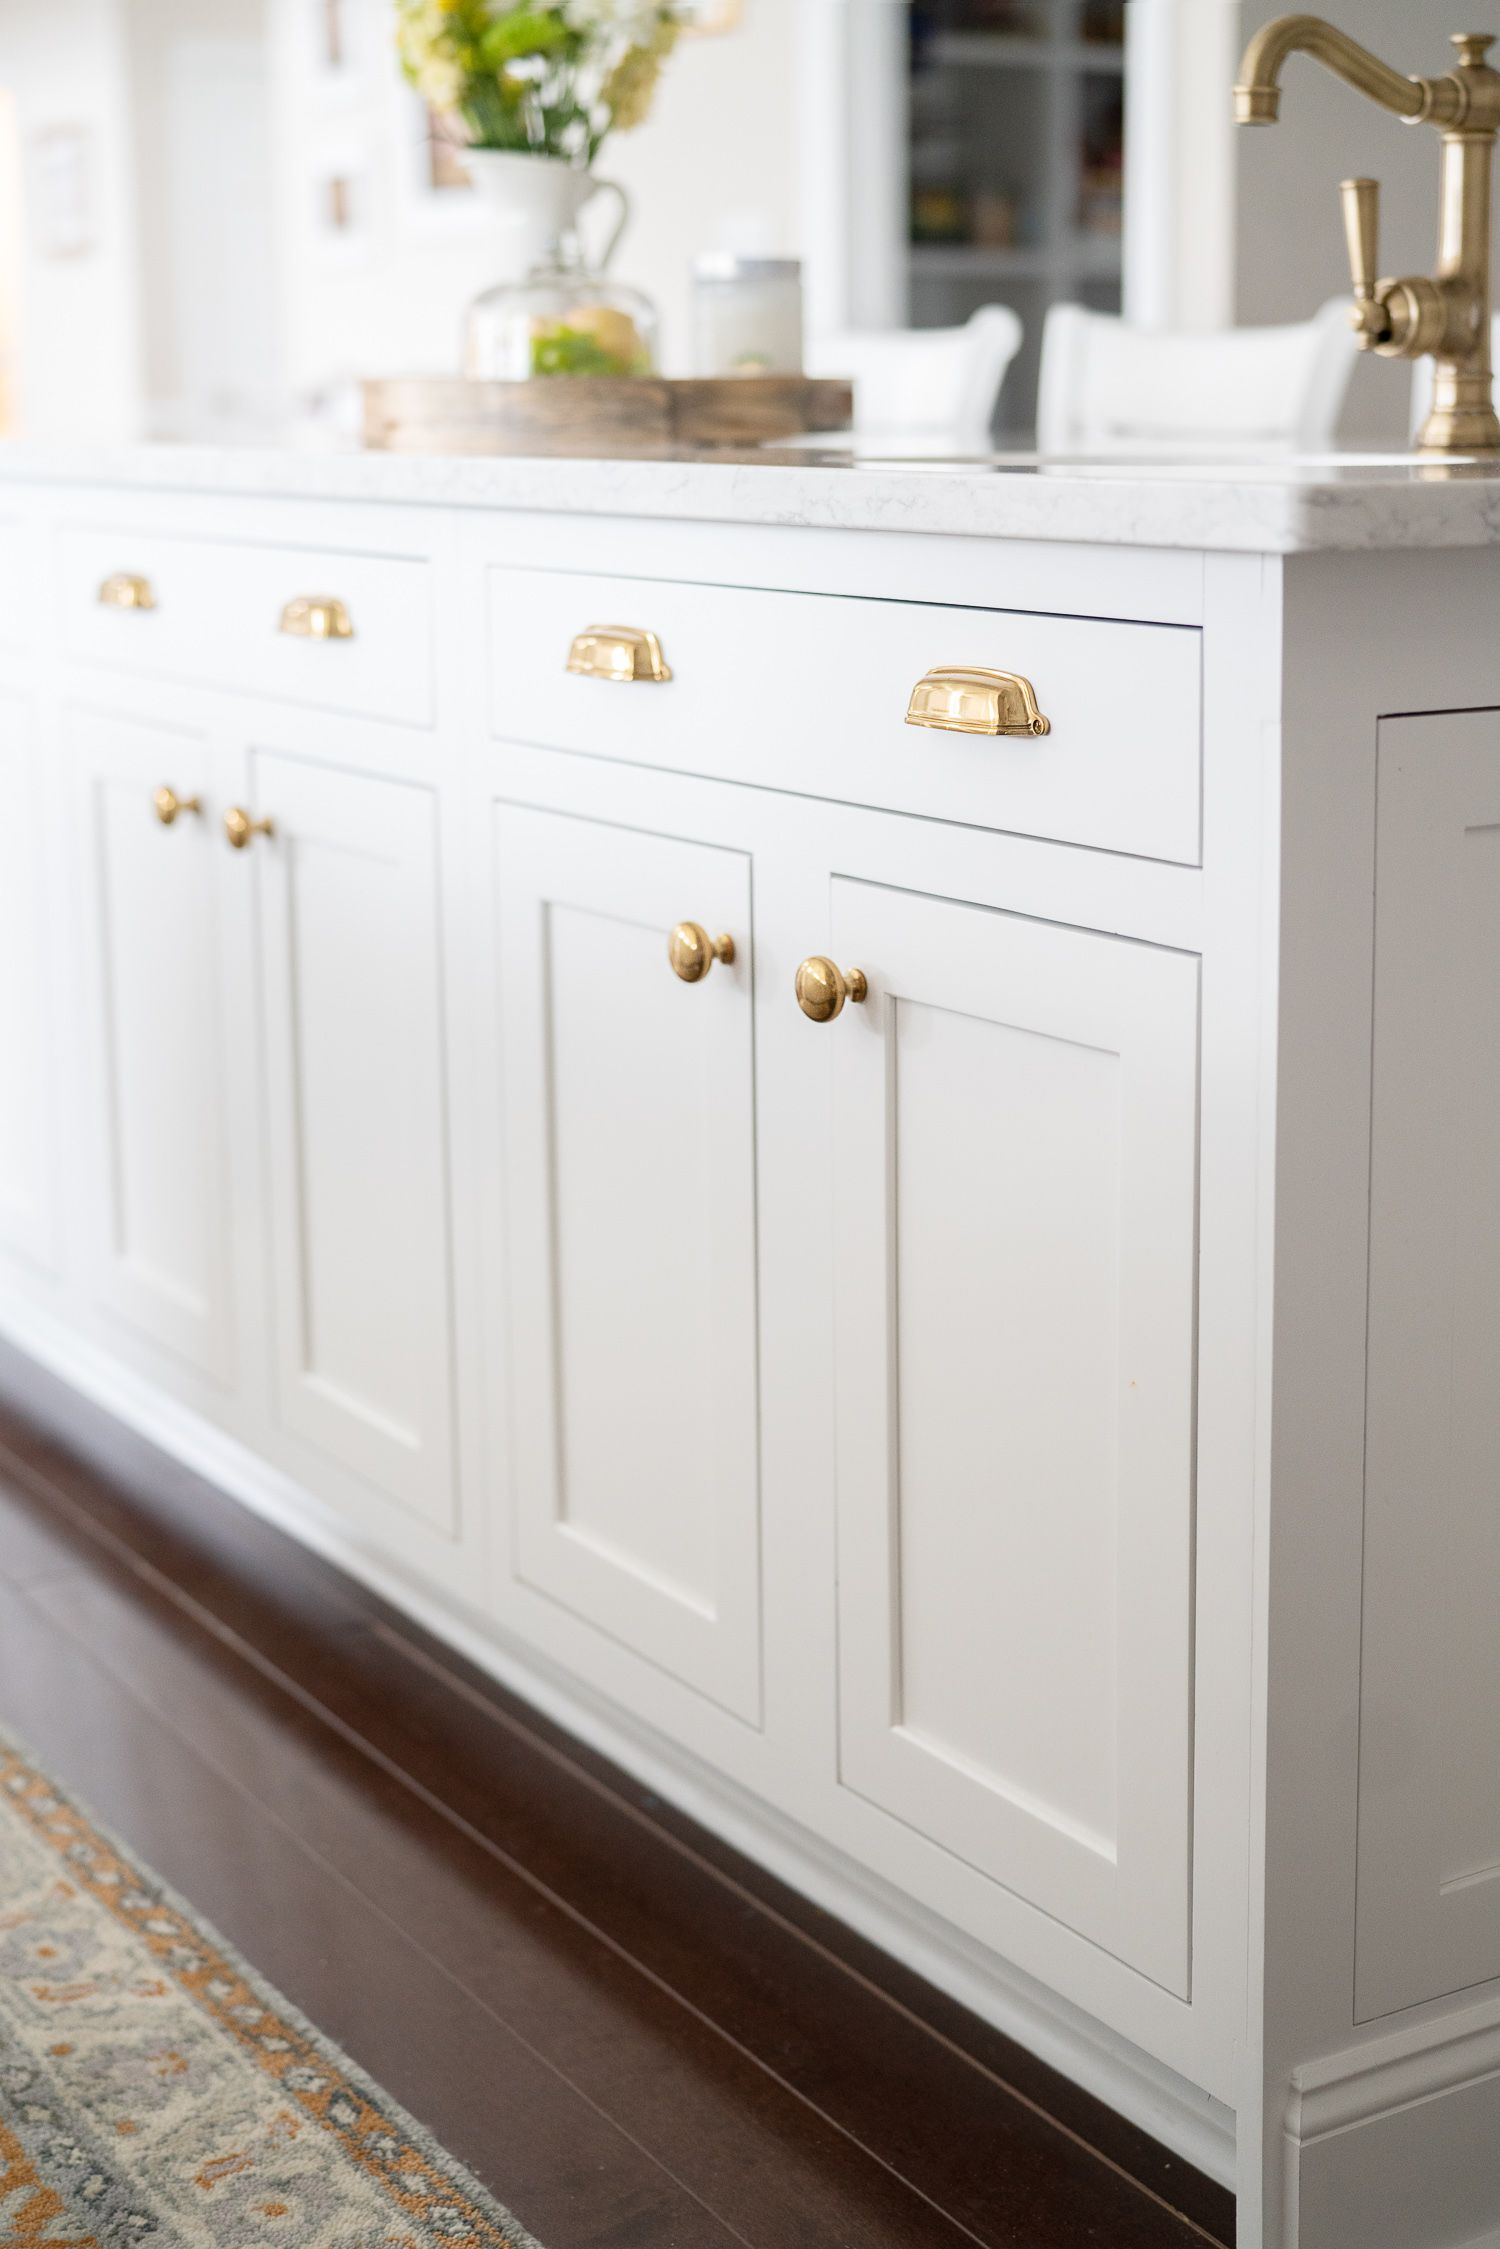 Inset Kitchen Cabinets Pin on Kitchen remodel